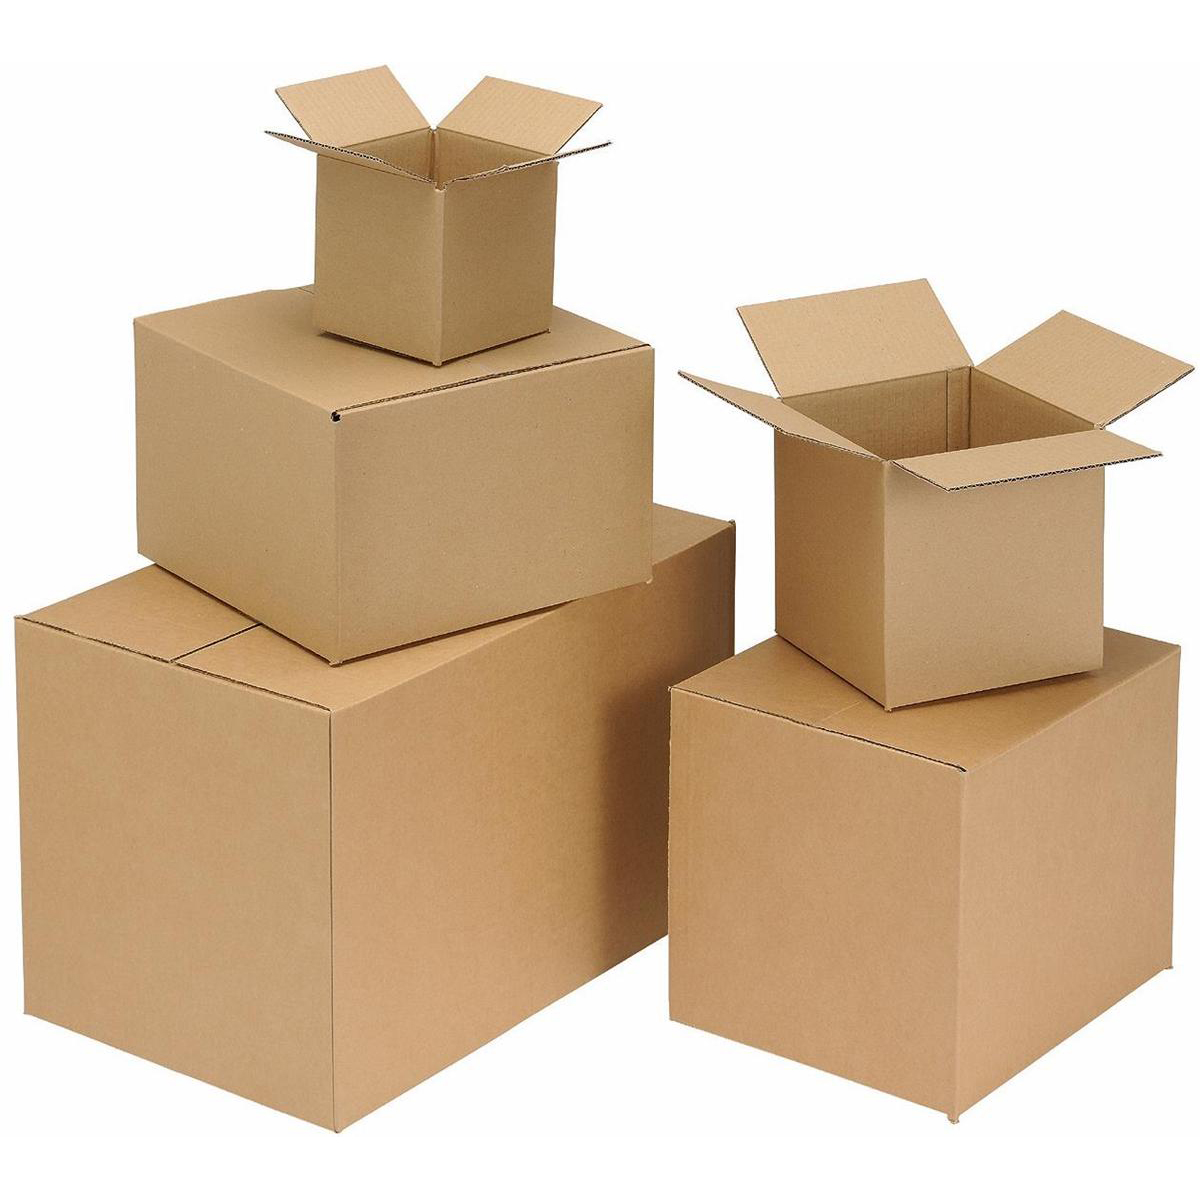 Packaging boxes Packing Carton Single Wall Strong Flat Packed 330x254x178mm Brown Pack 25